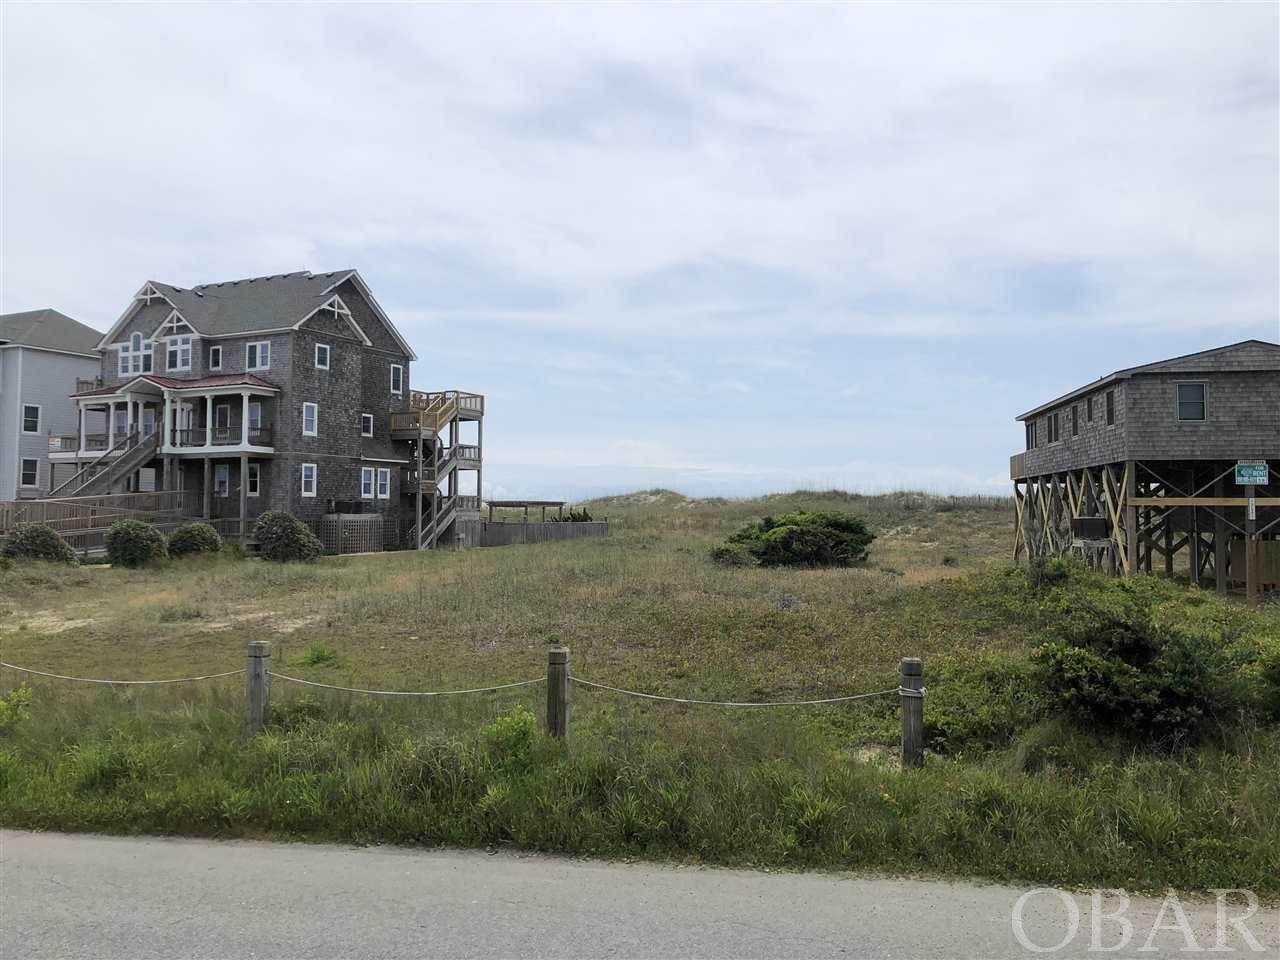 57079 Lighthouse Court, Hatteras, NC 17943, ,Lots/land,For sale,Lighthouse Court,105140